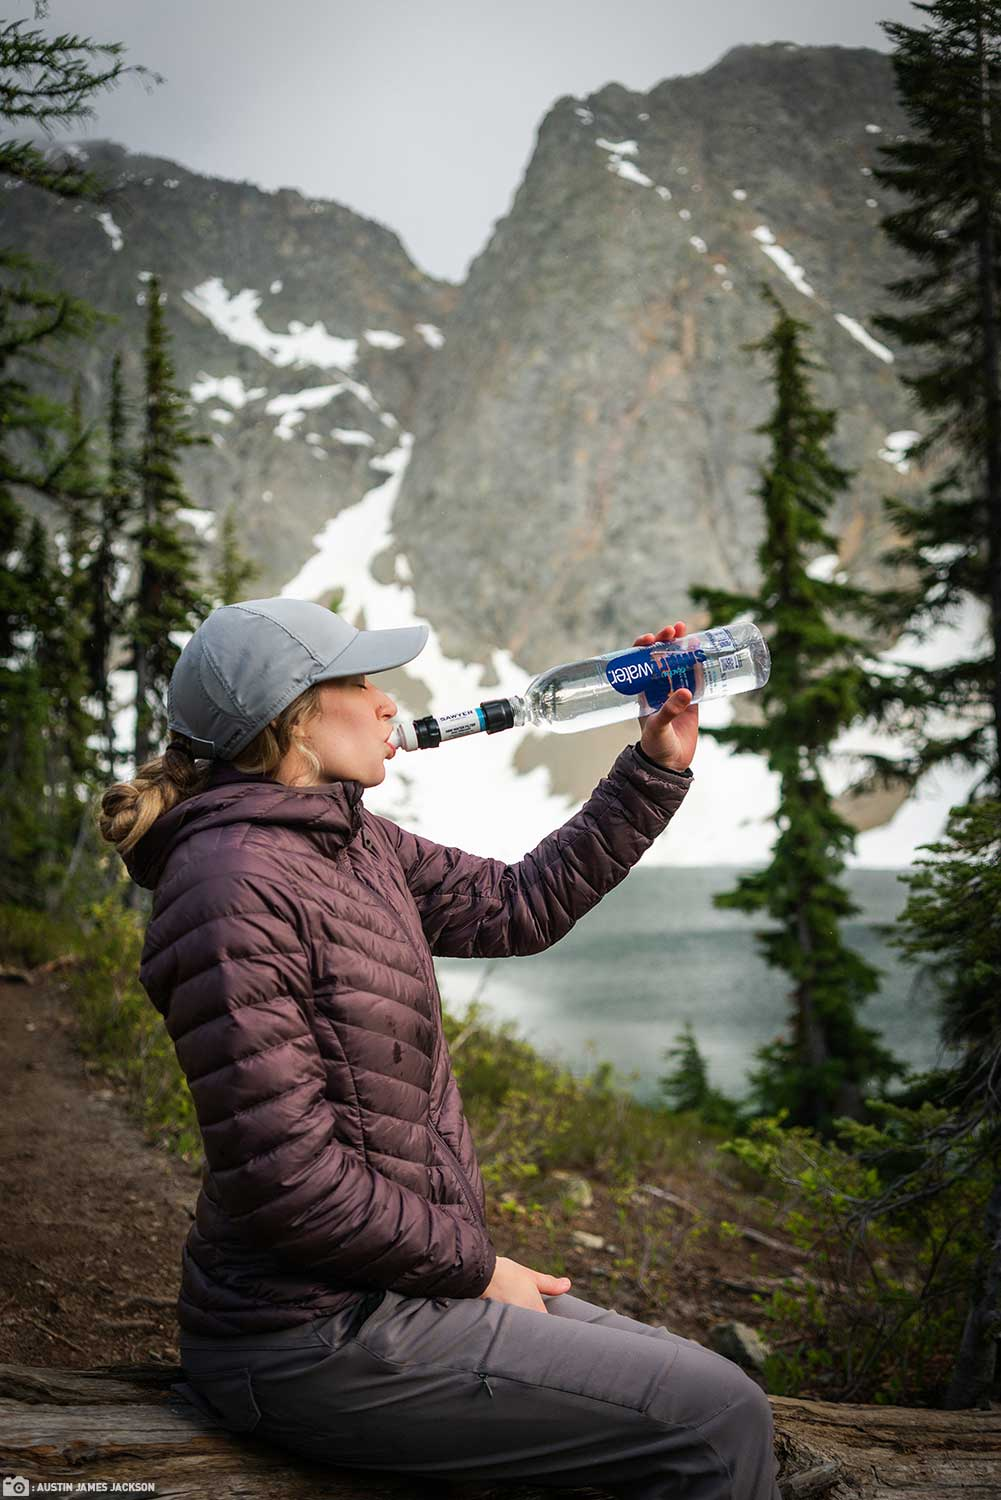 A Woman Drinking Freshly Filtered Water from her Sawyer Dual Threaded MINI Filter on a Smartwater Bottle